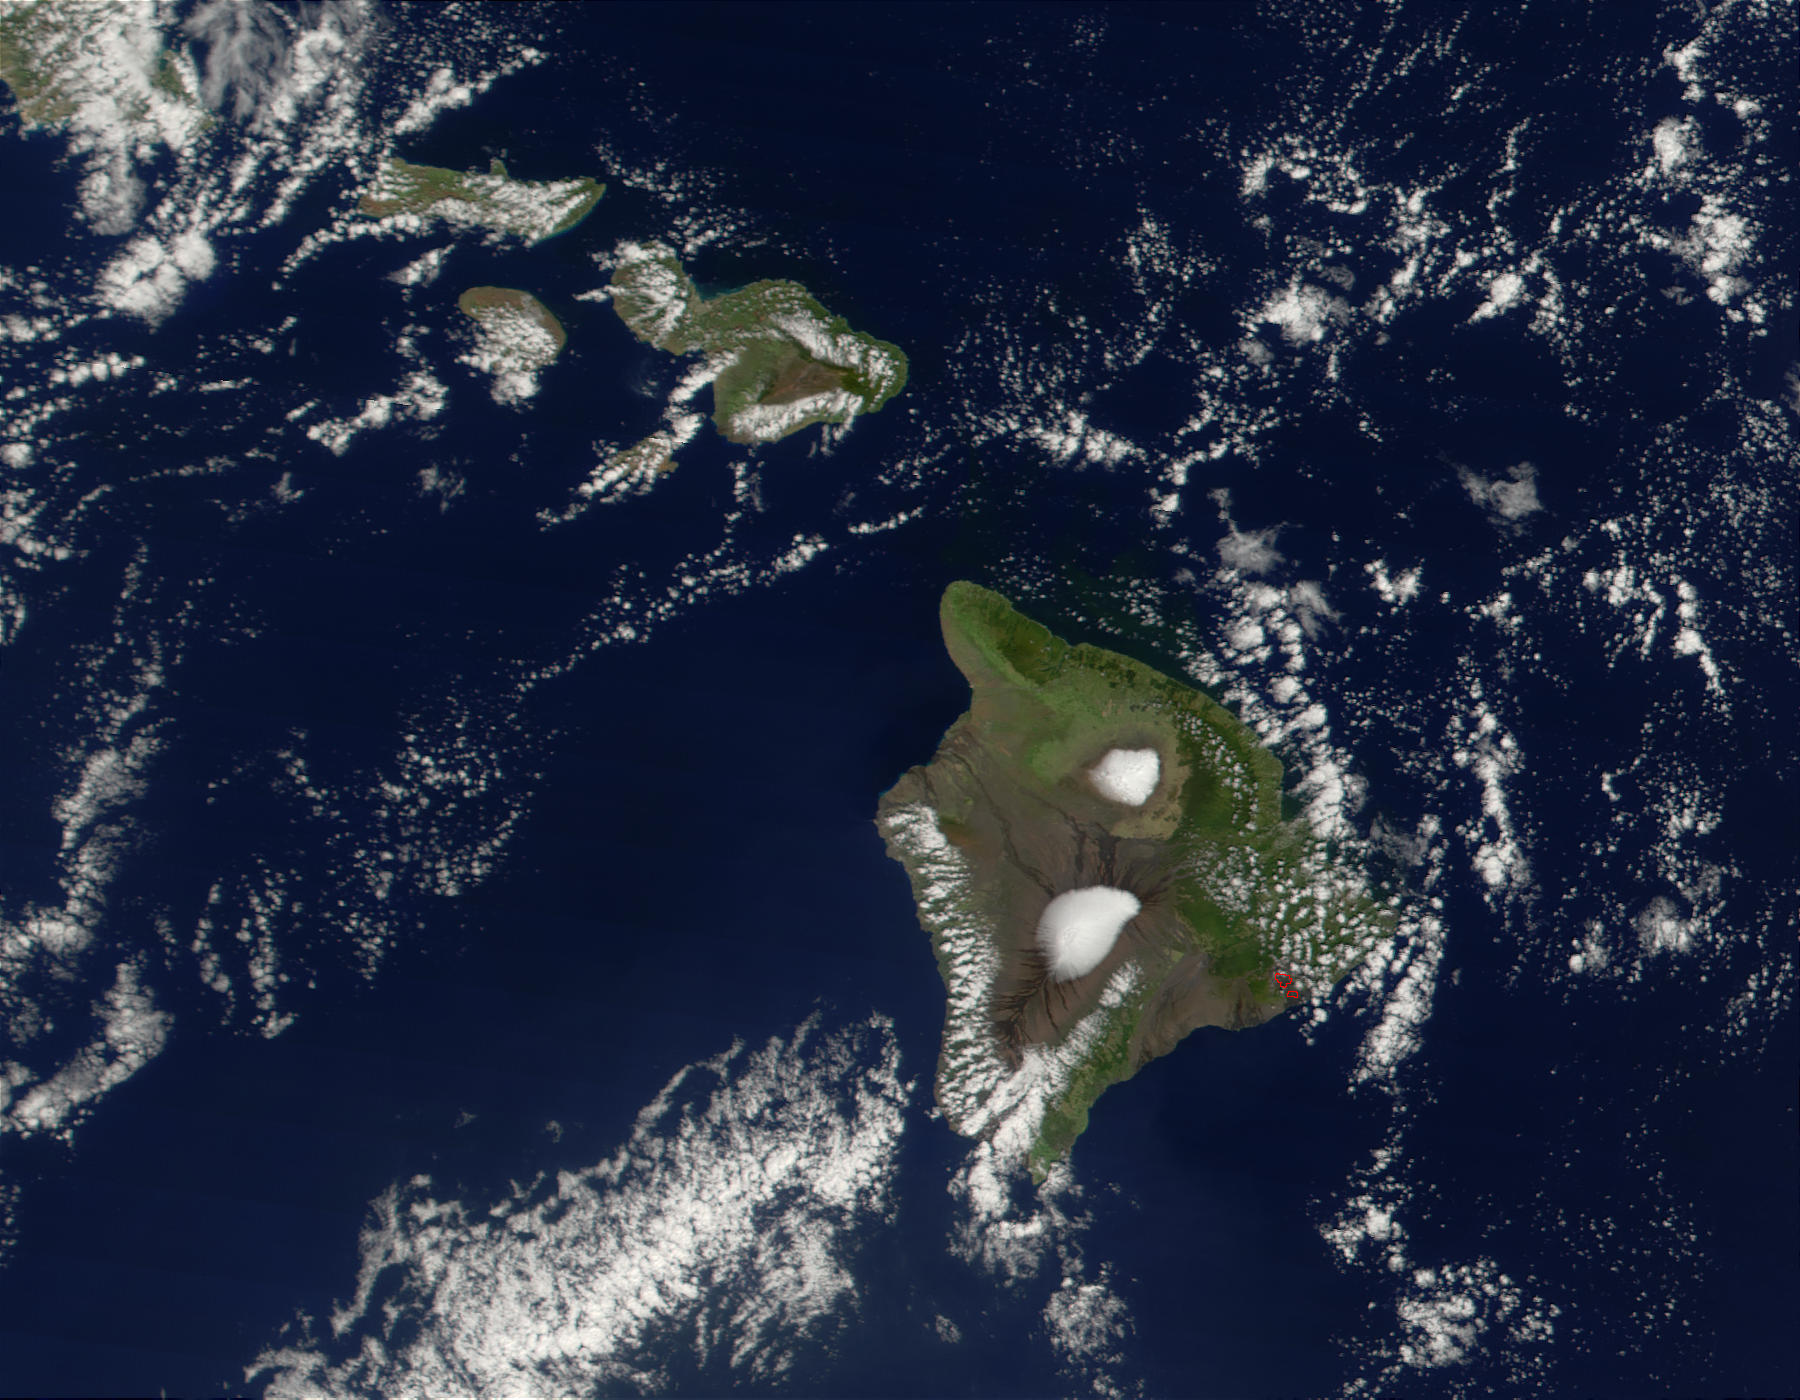 Snow on Mauna Kea and Mauna Loa, Hawaii - related image preview